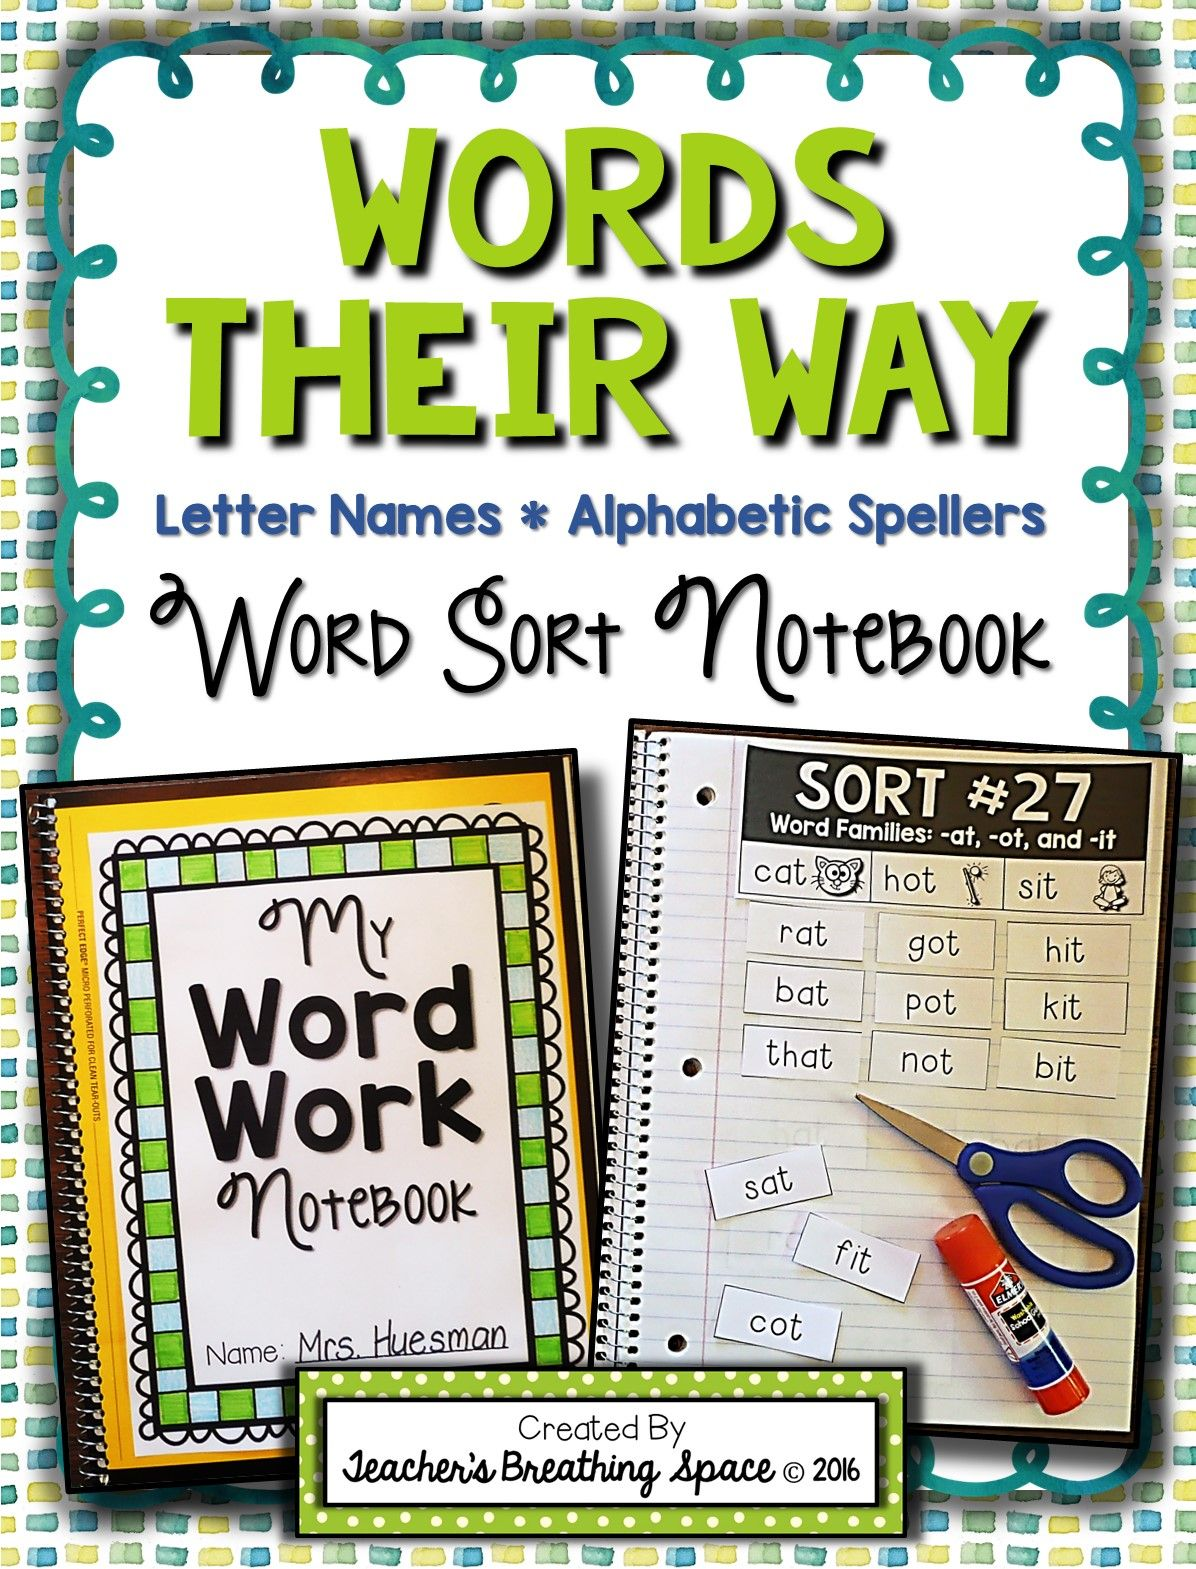 Worksheets Words Their Way Worksheets words their way letter name alphabetic sorts 1 50 word sorting notebook